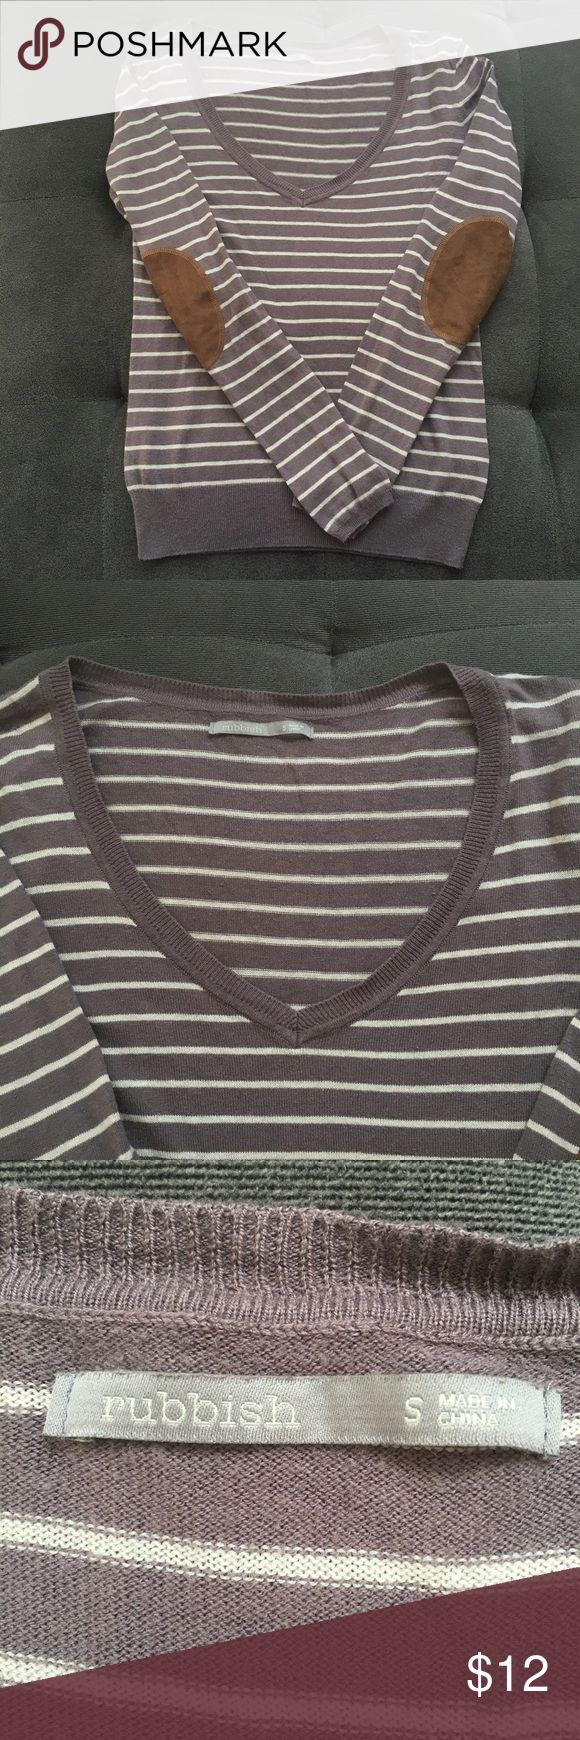 Elbow Patch Pullover Rubbish Pullover. From Nordstrom. Color is a brown/tan with cream stripes. V neck. Size S Rubbish Sweaters V-Necks